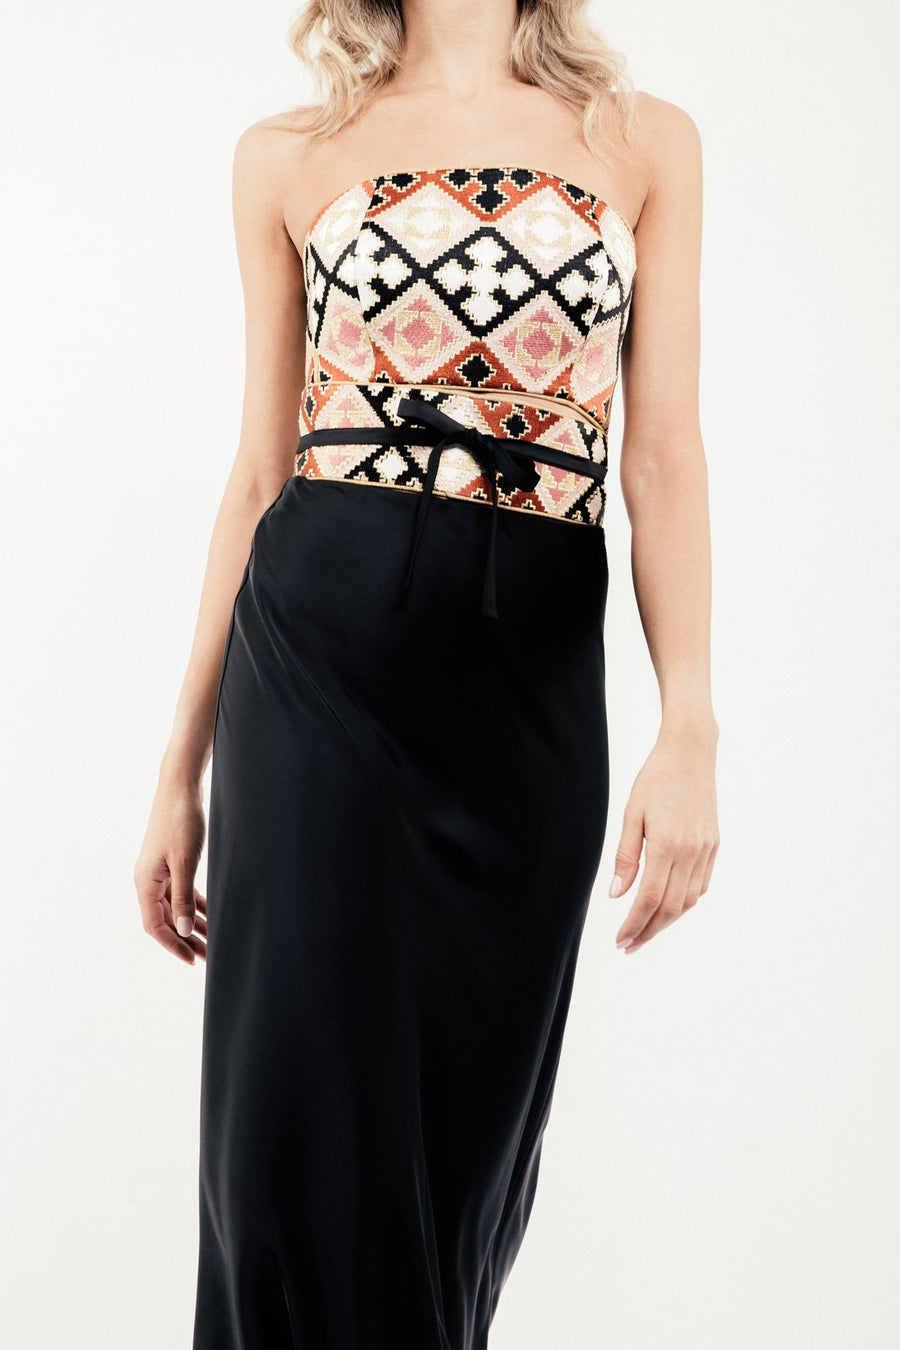 Jahan Crop Top + Belt - Pink and Black